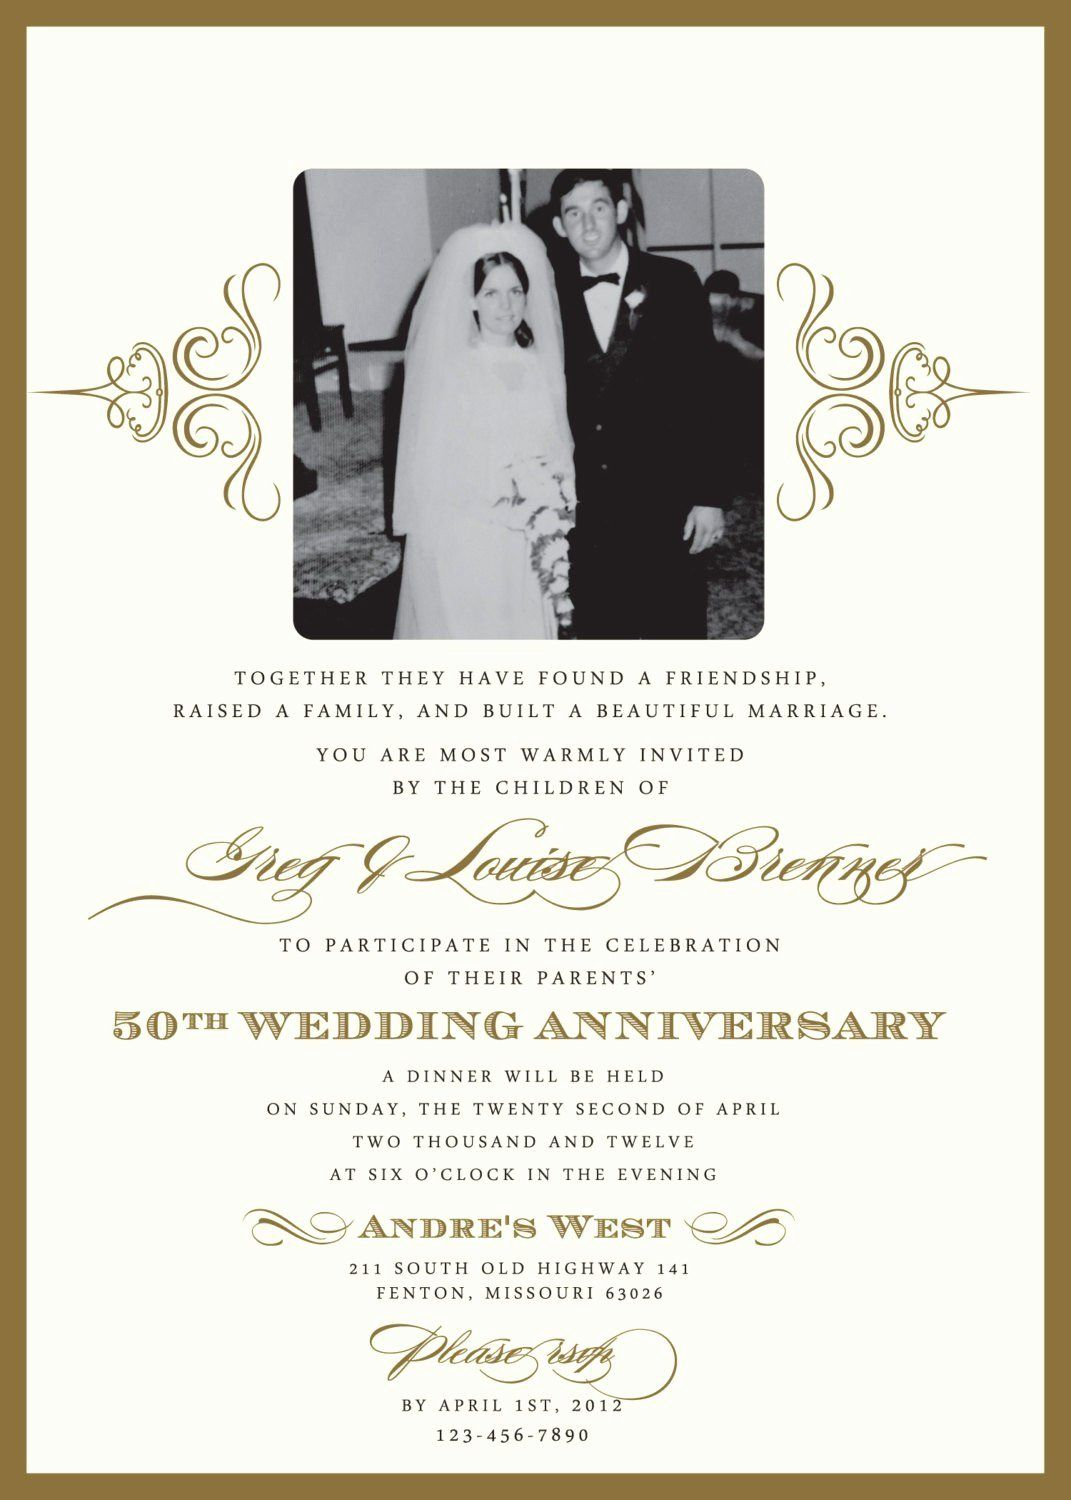 004 Remarkable 50th Anniversary Invitation Template Free Image  Download Golden WeddingFull